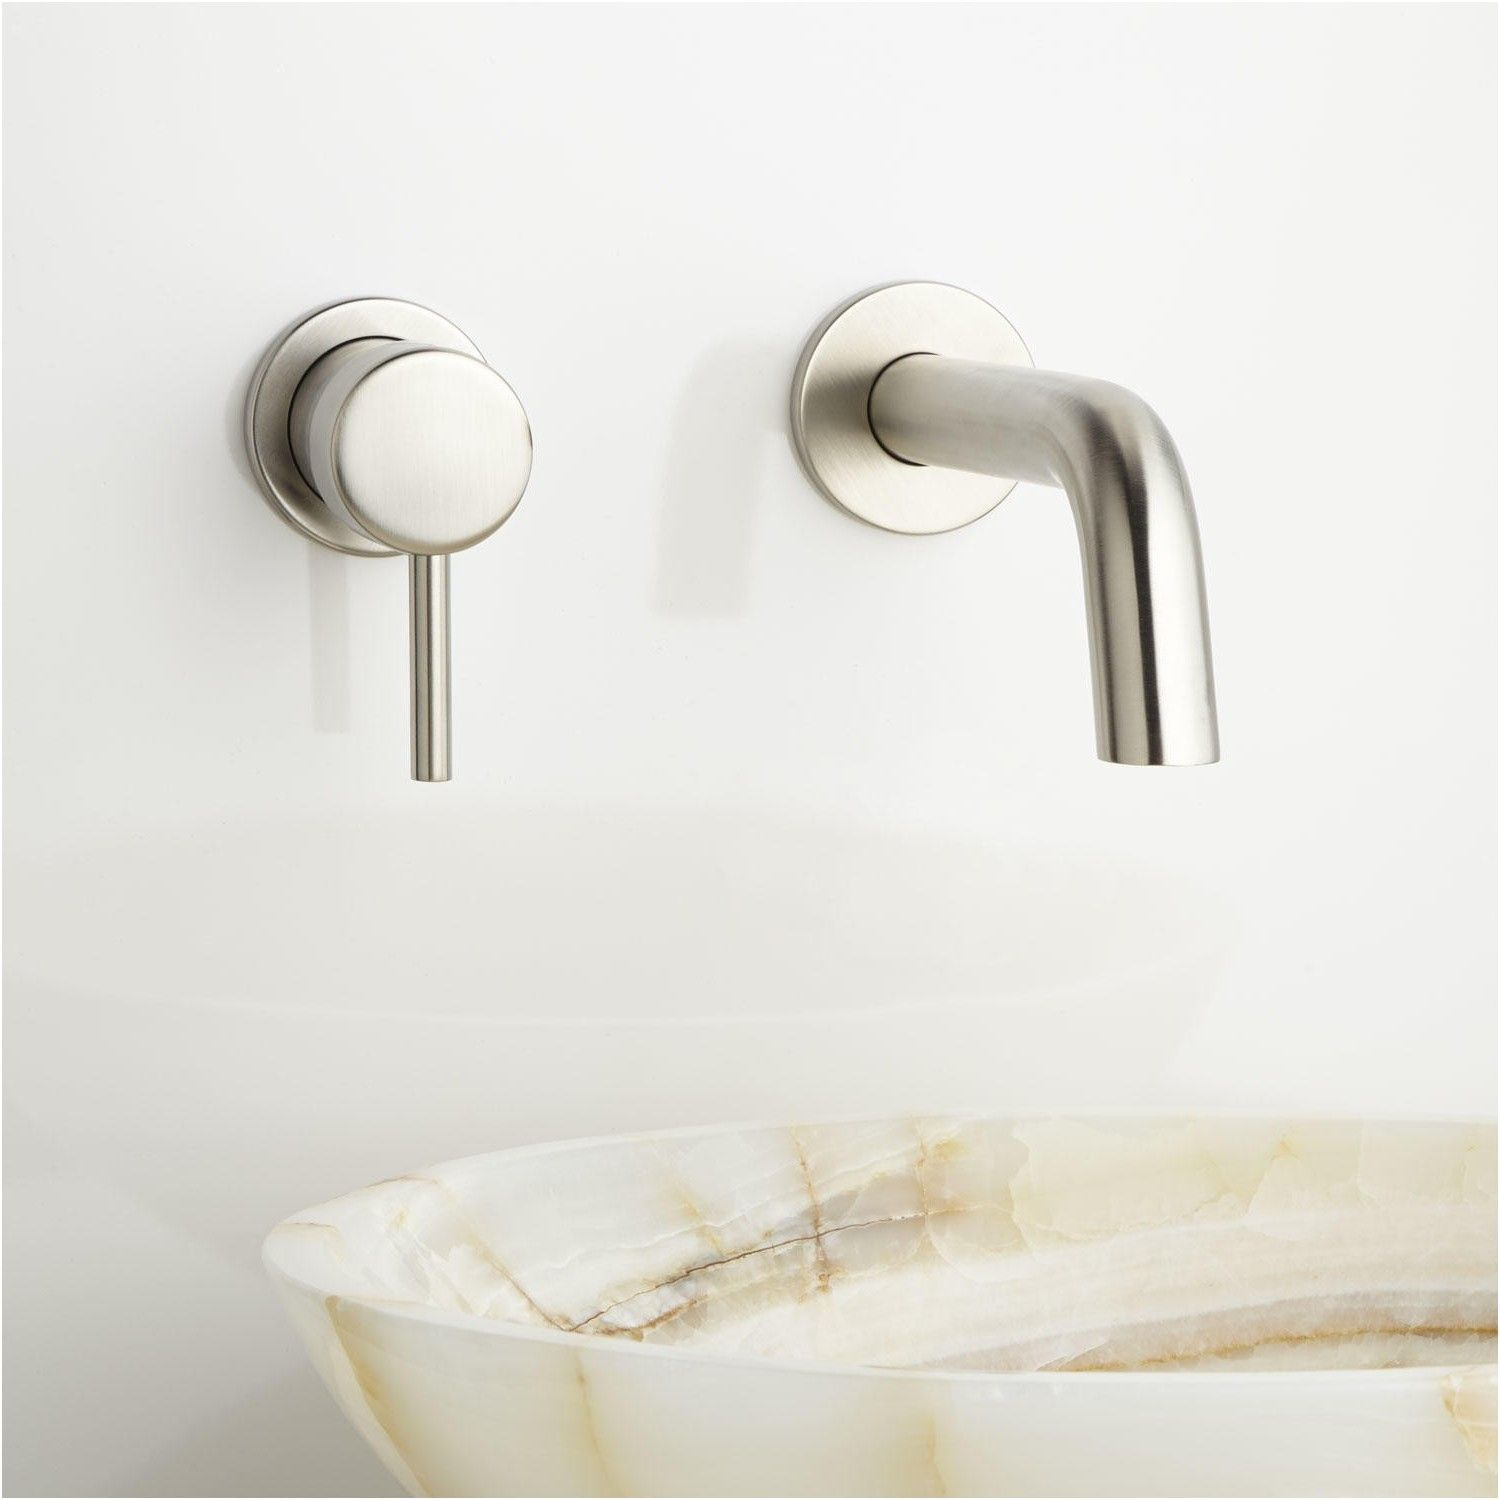 rotunda wall mount bathroom faucet bathroom from Wall Faucet ...